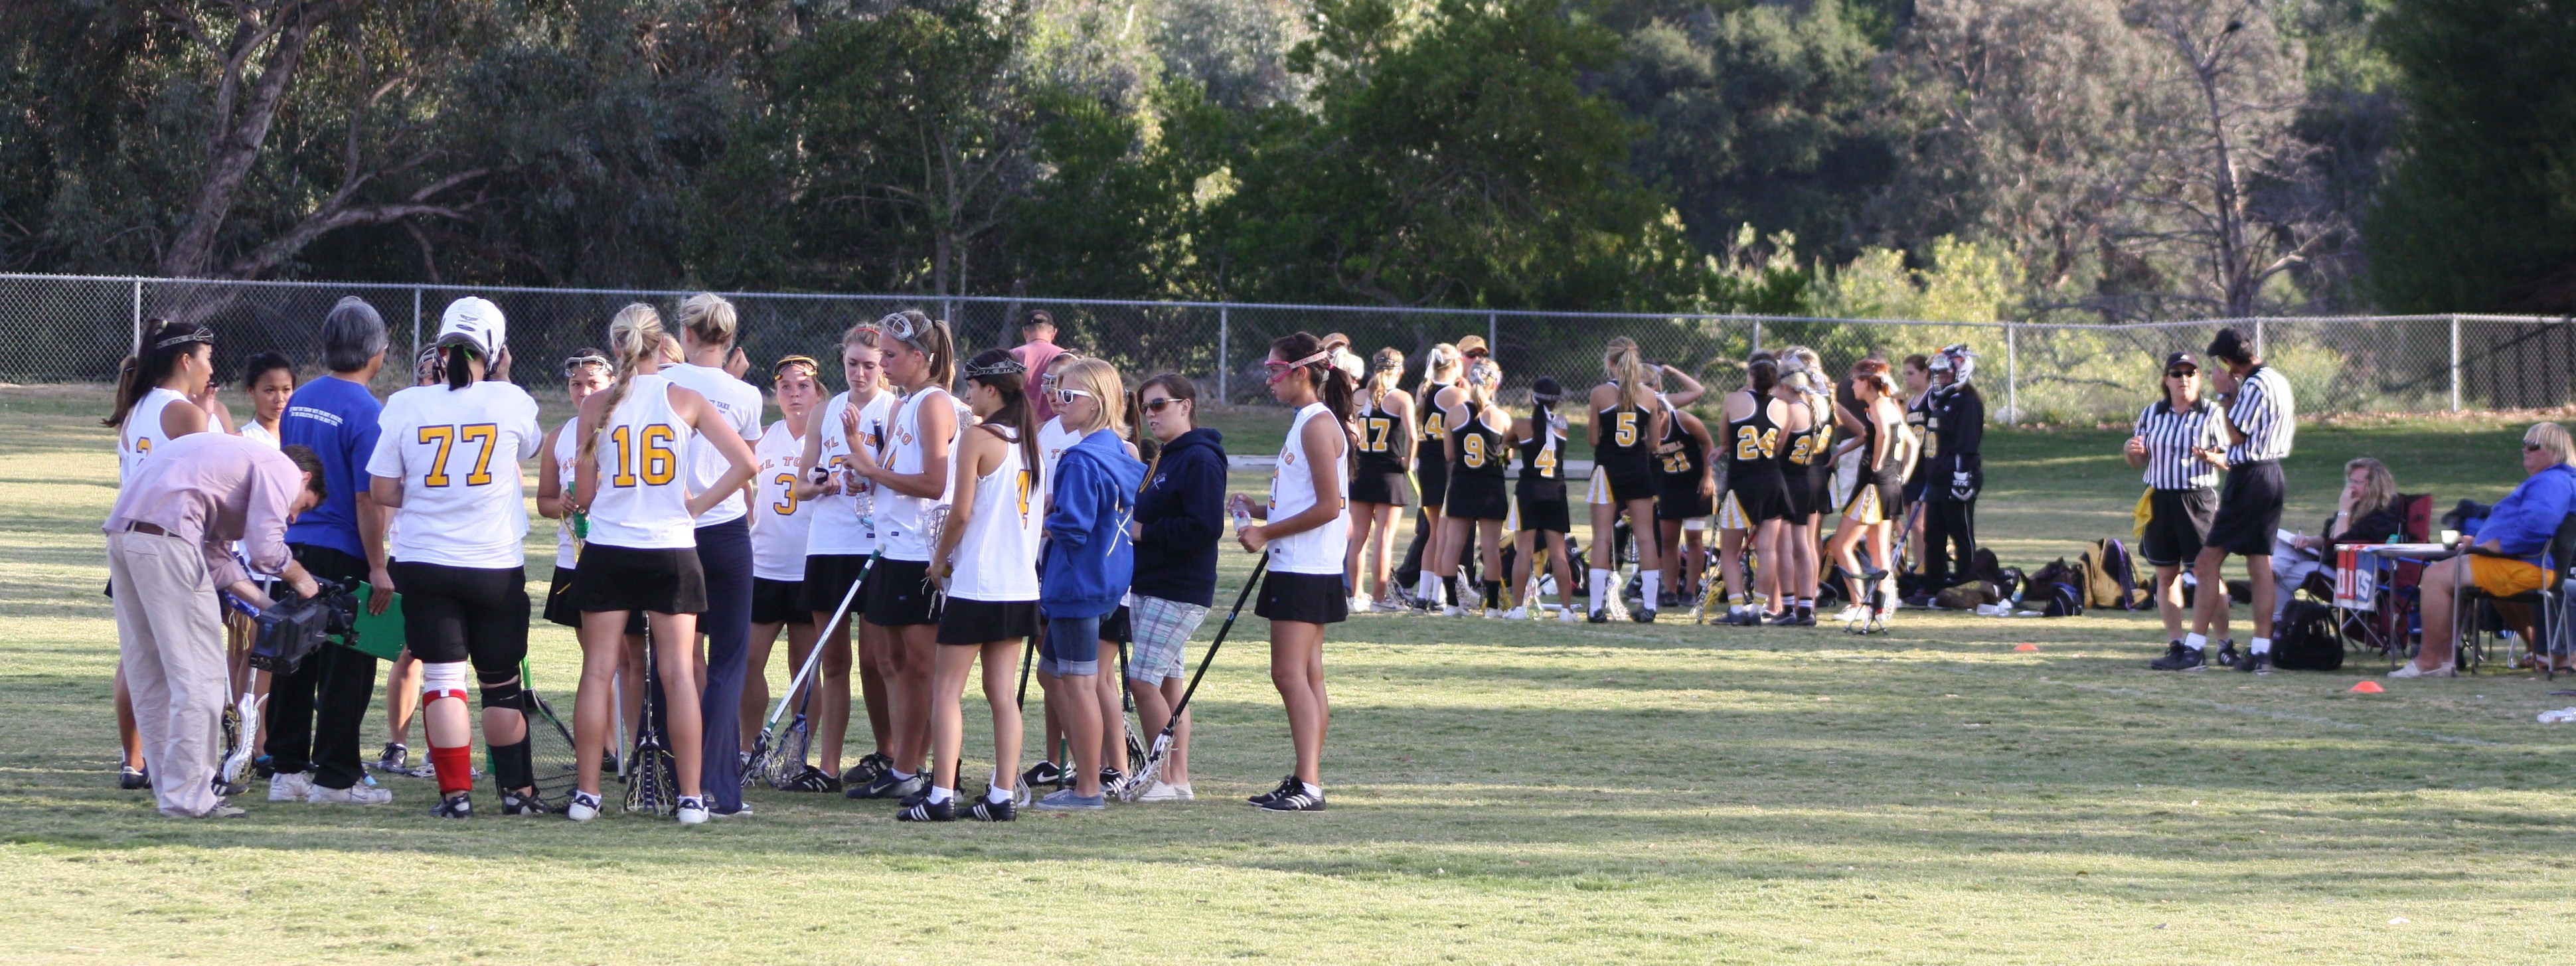 El Toro Girls Lacrosse opened up an 8-3 lead at halftime. Photo by LaxBuzz